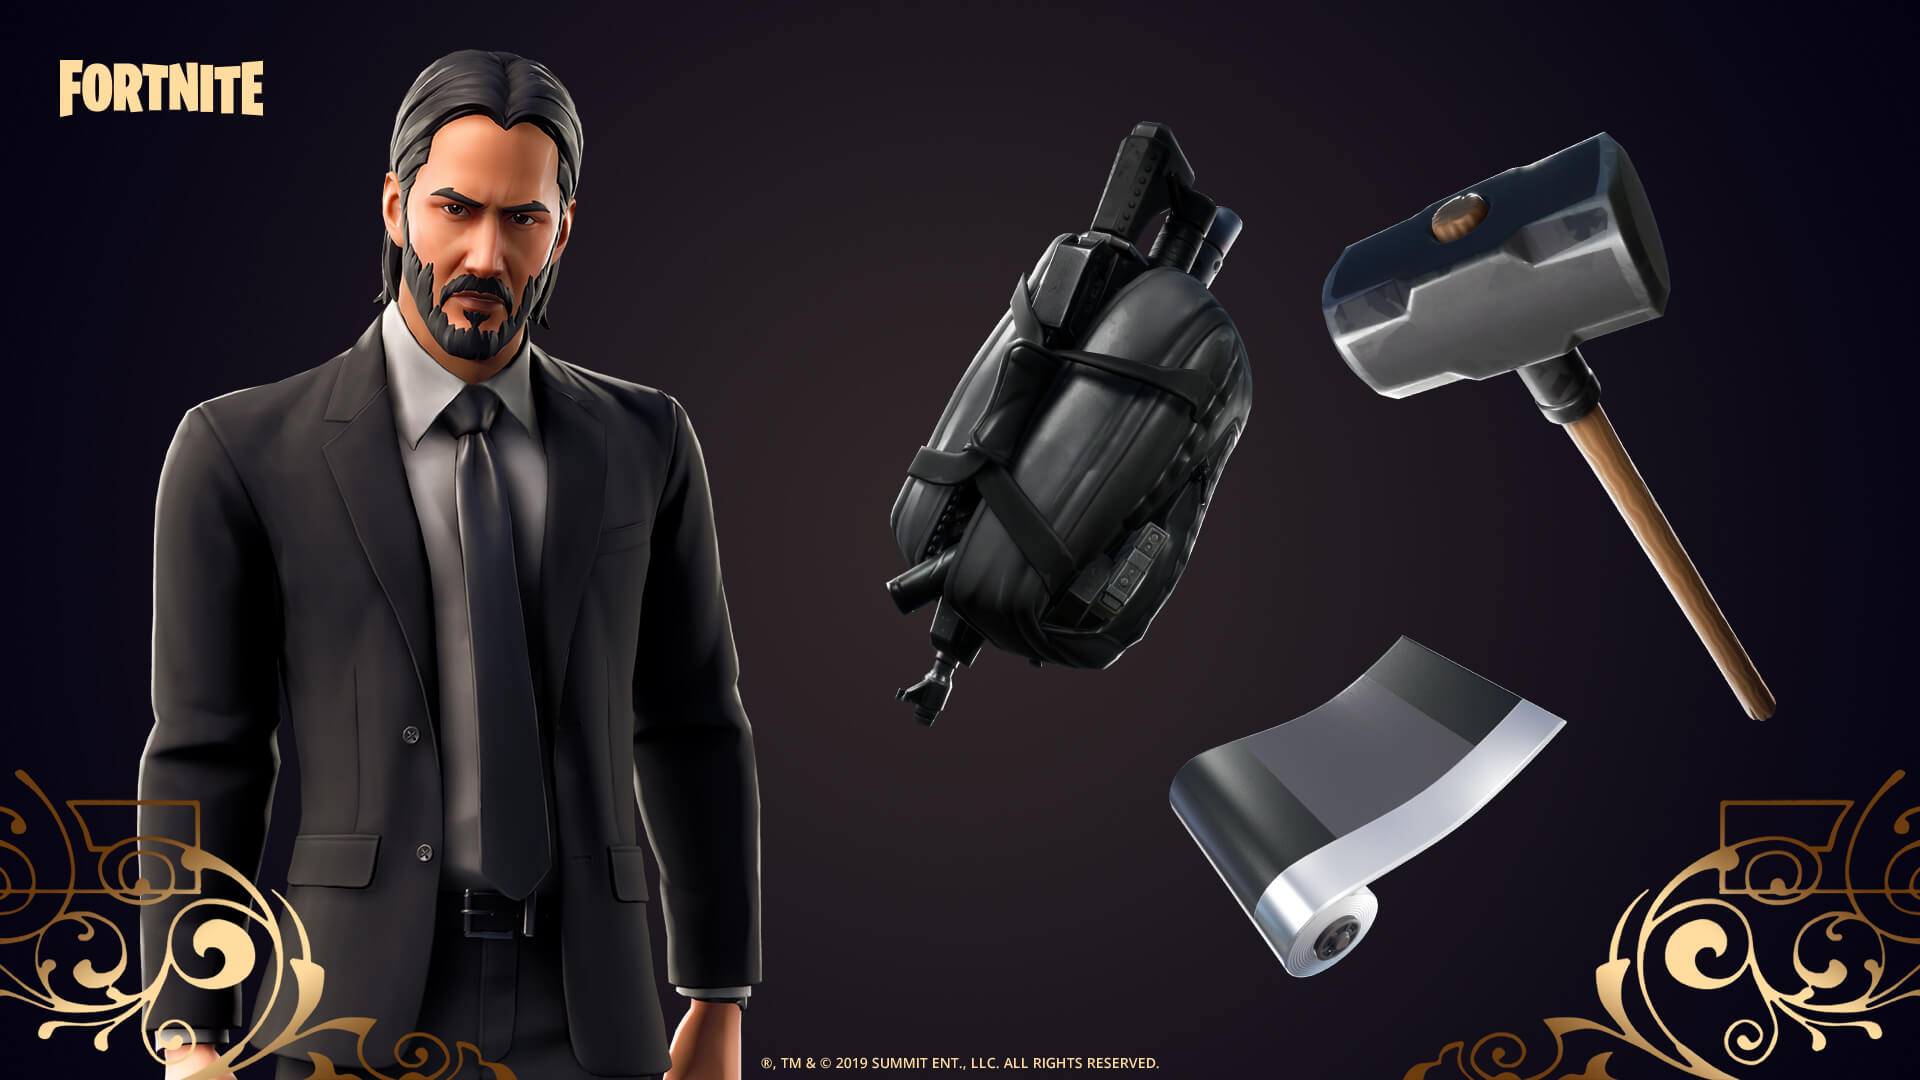 fortnite, john wick, film, oyun, espor